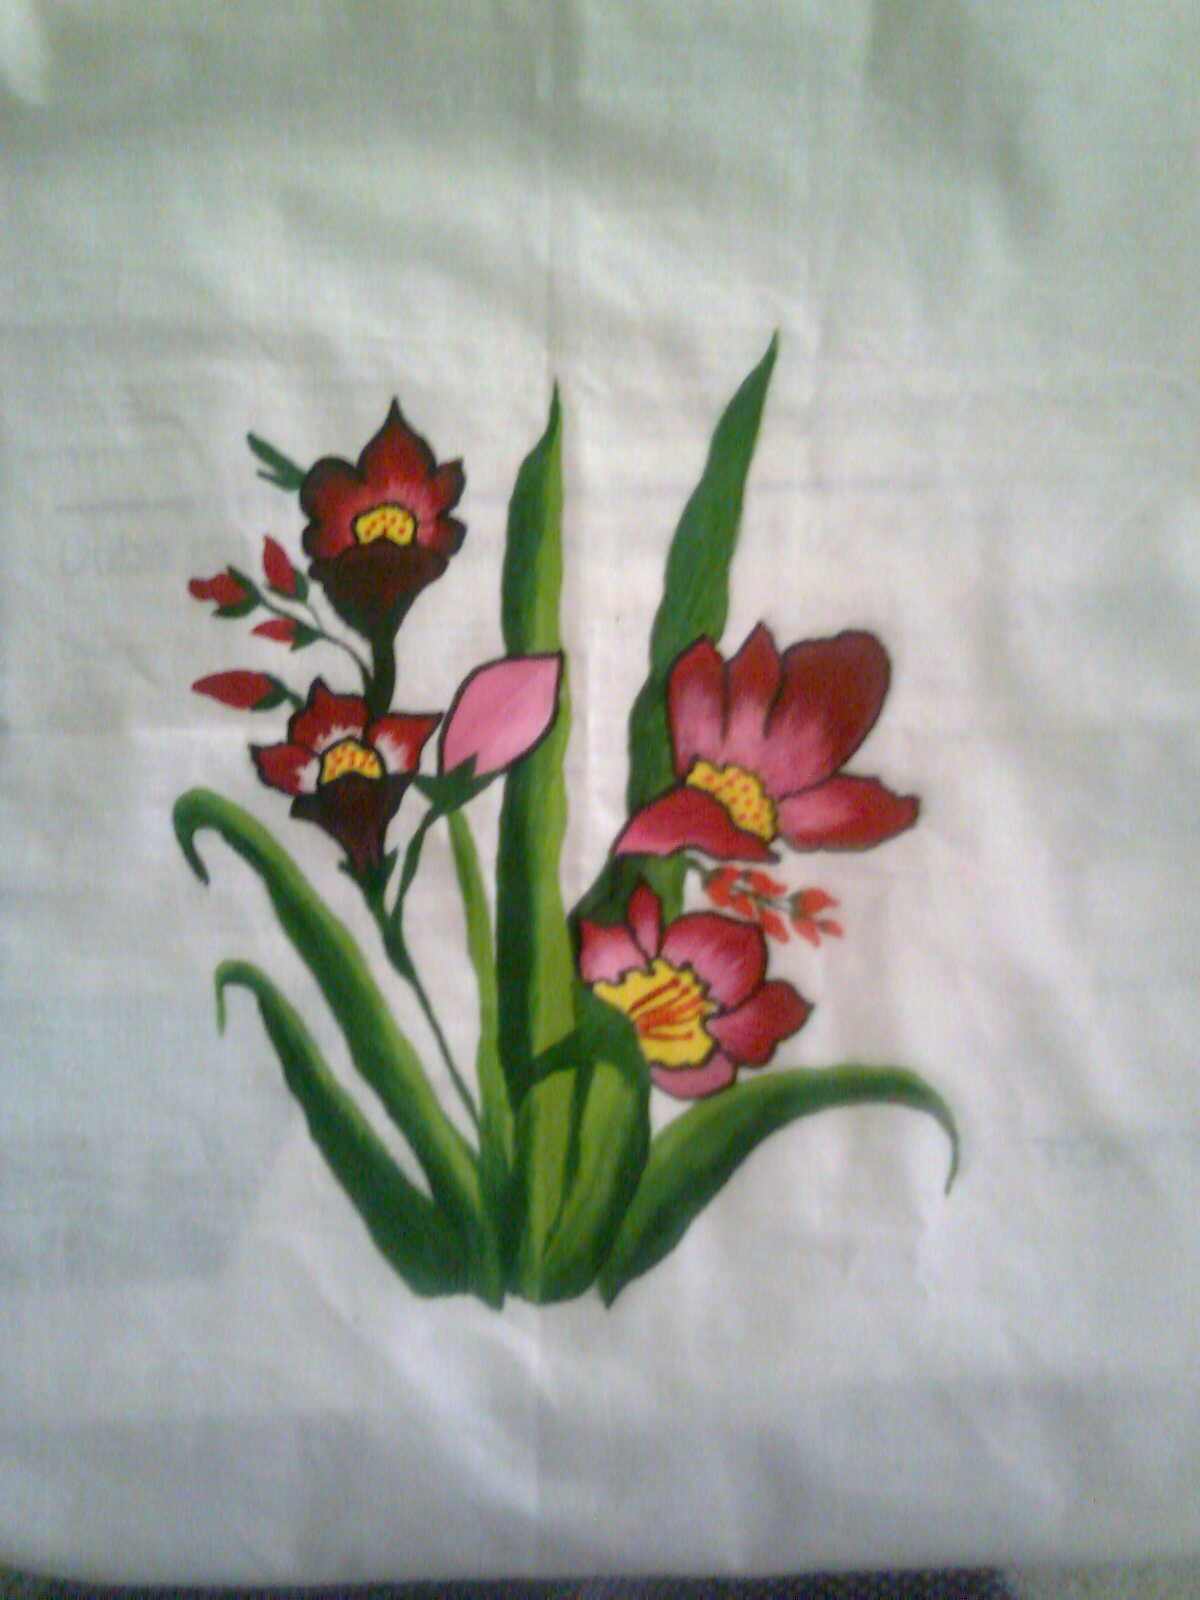 Bed sheet designs for fabric paint - Fabric Painting Design Add Caption